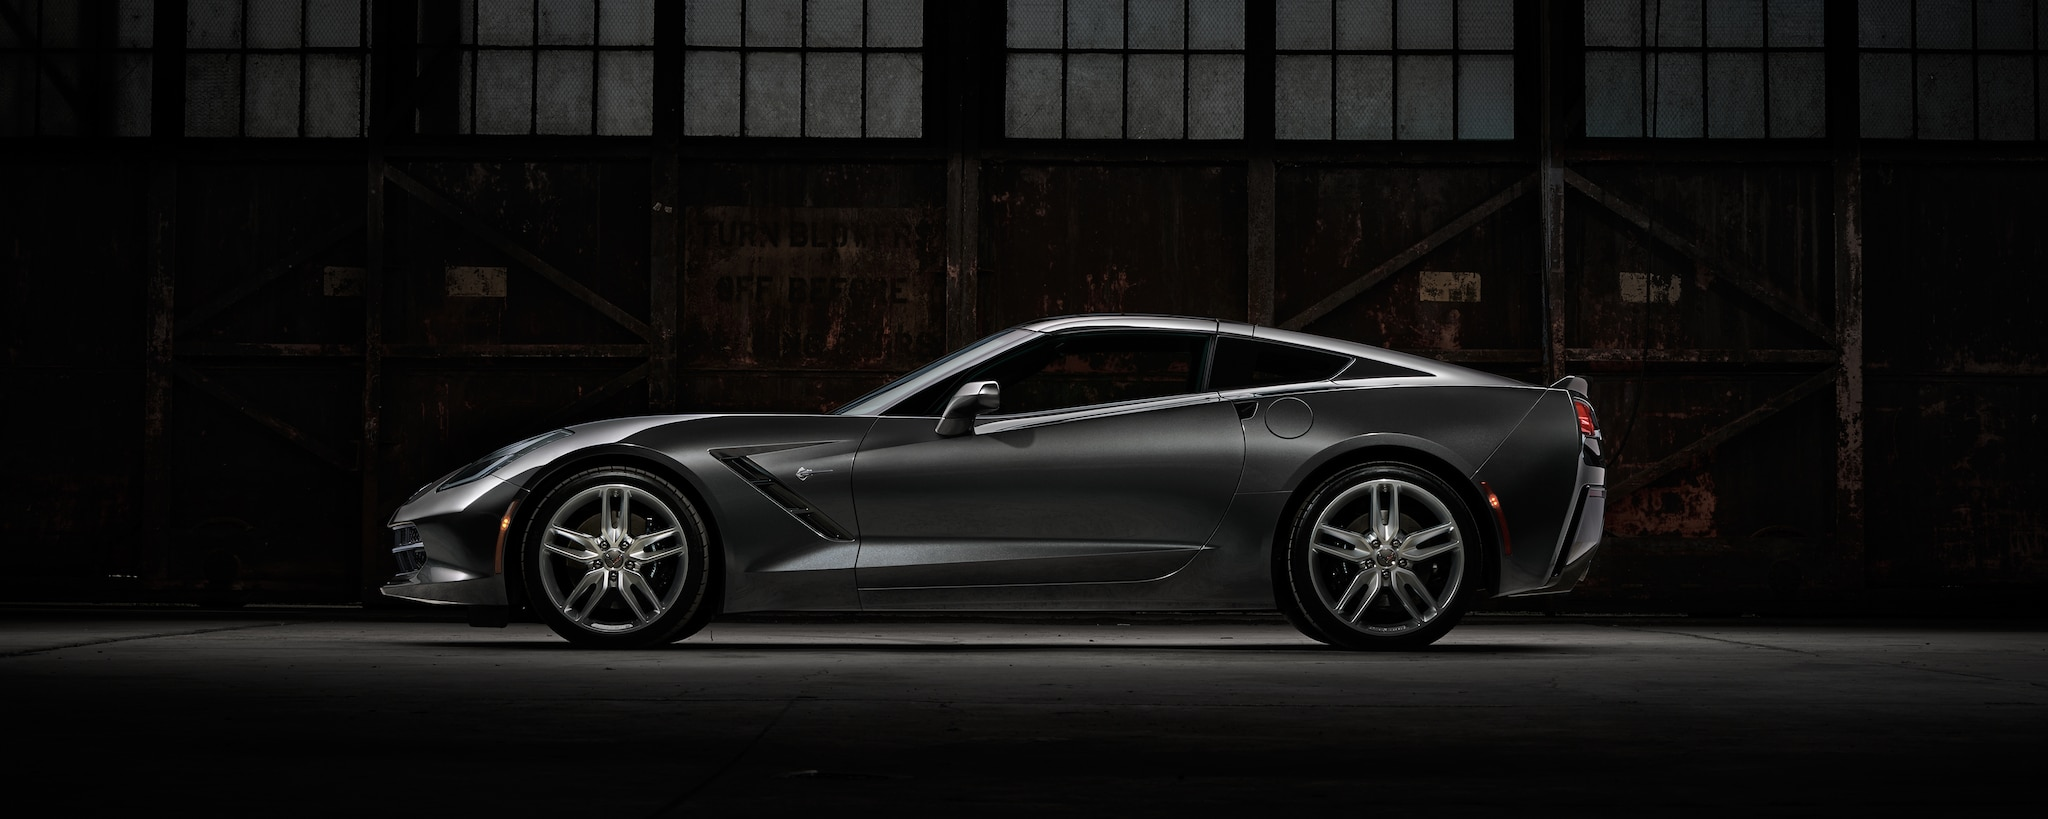 Auto deportivo Corvette Stingray 2017